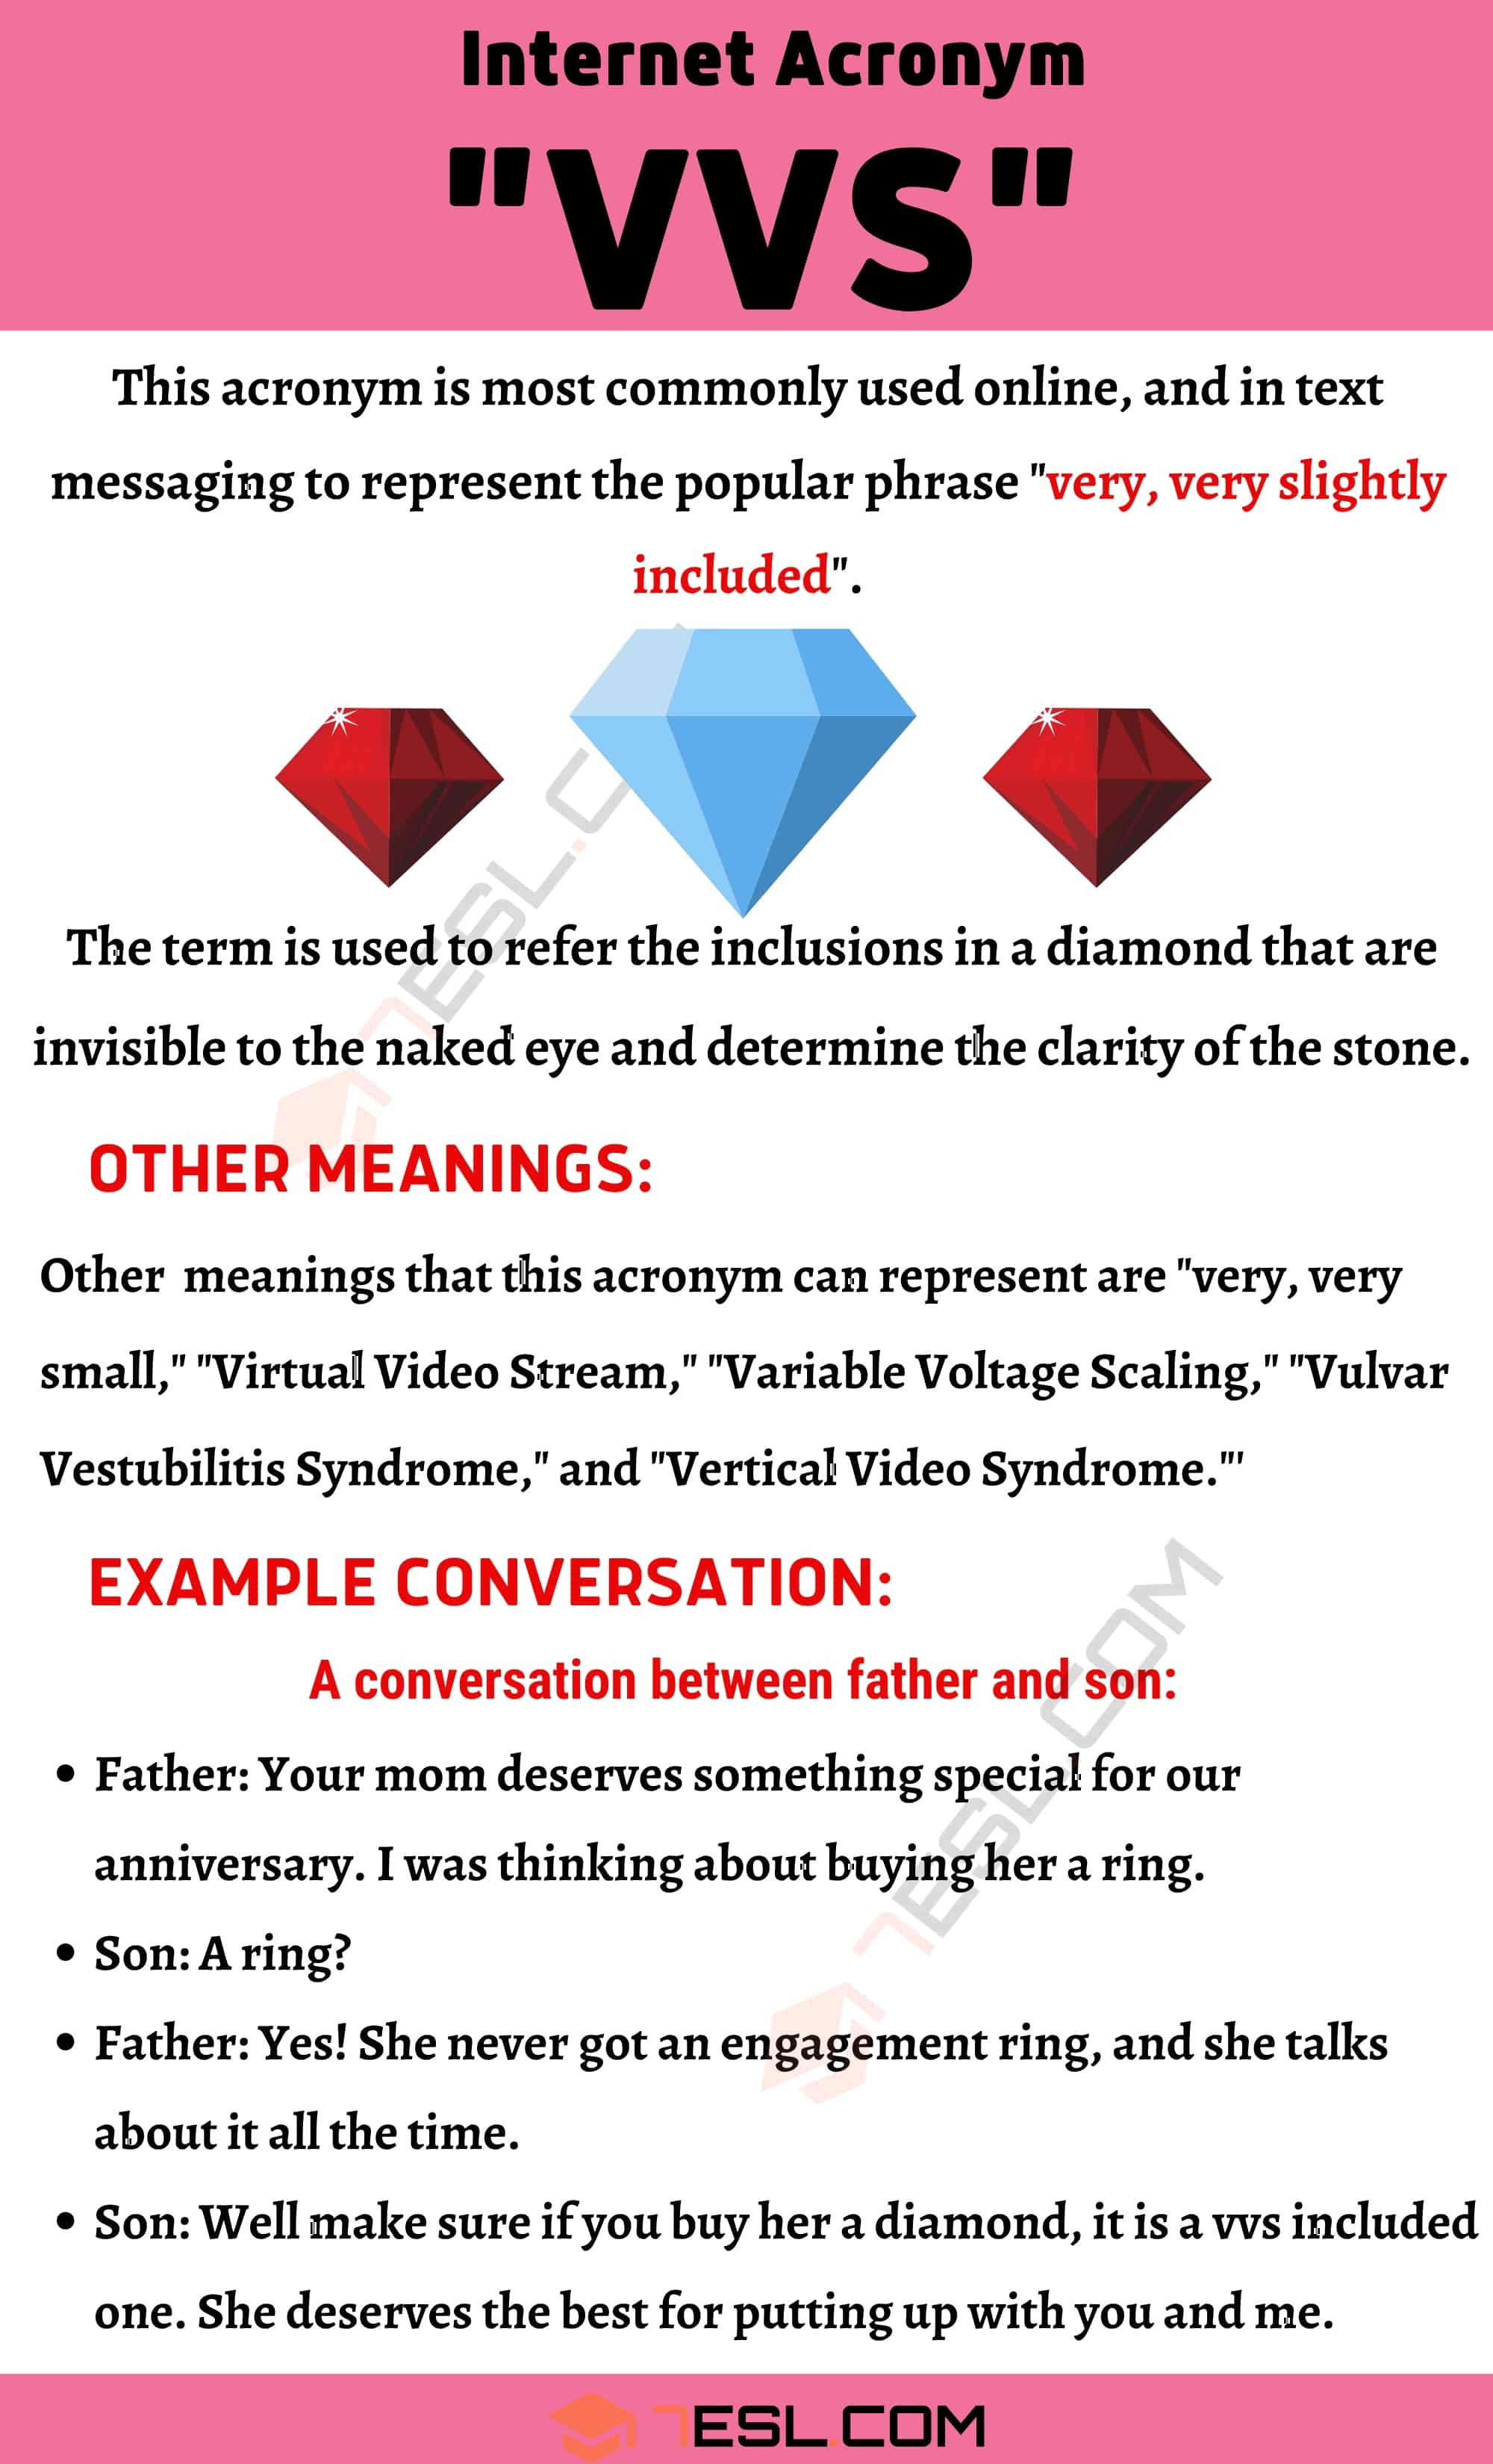 "VVS Meaning: Examples and Definition of The Acronym ""VVS"""